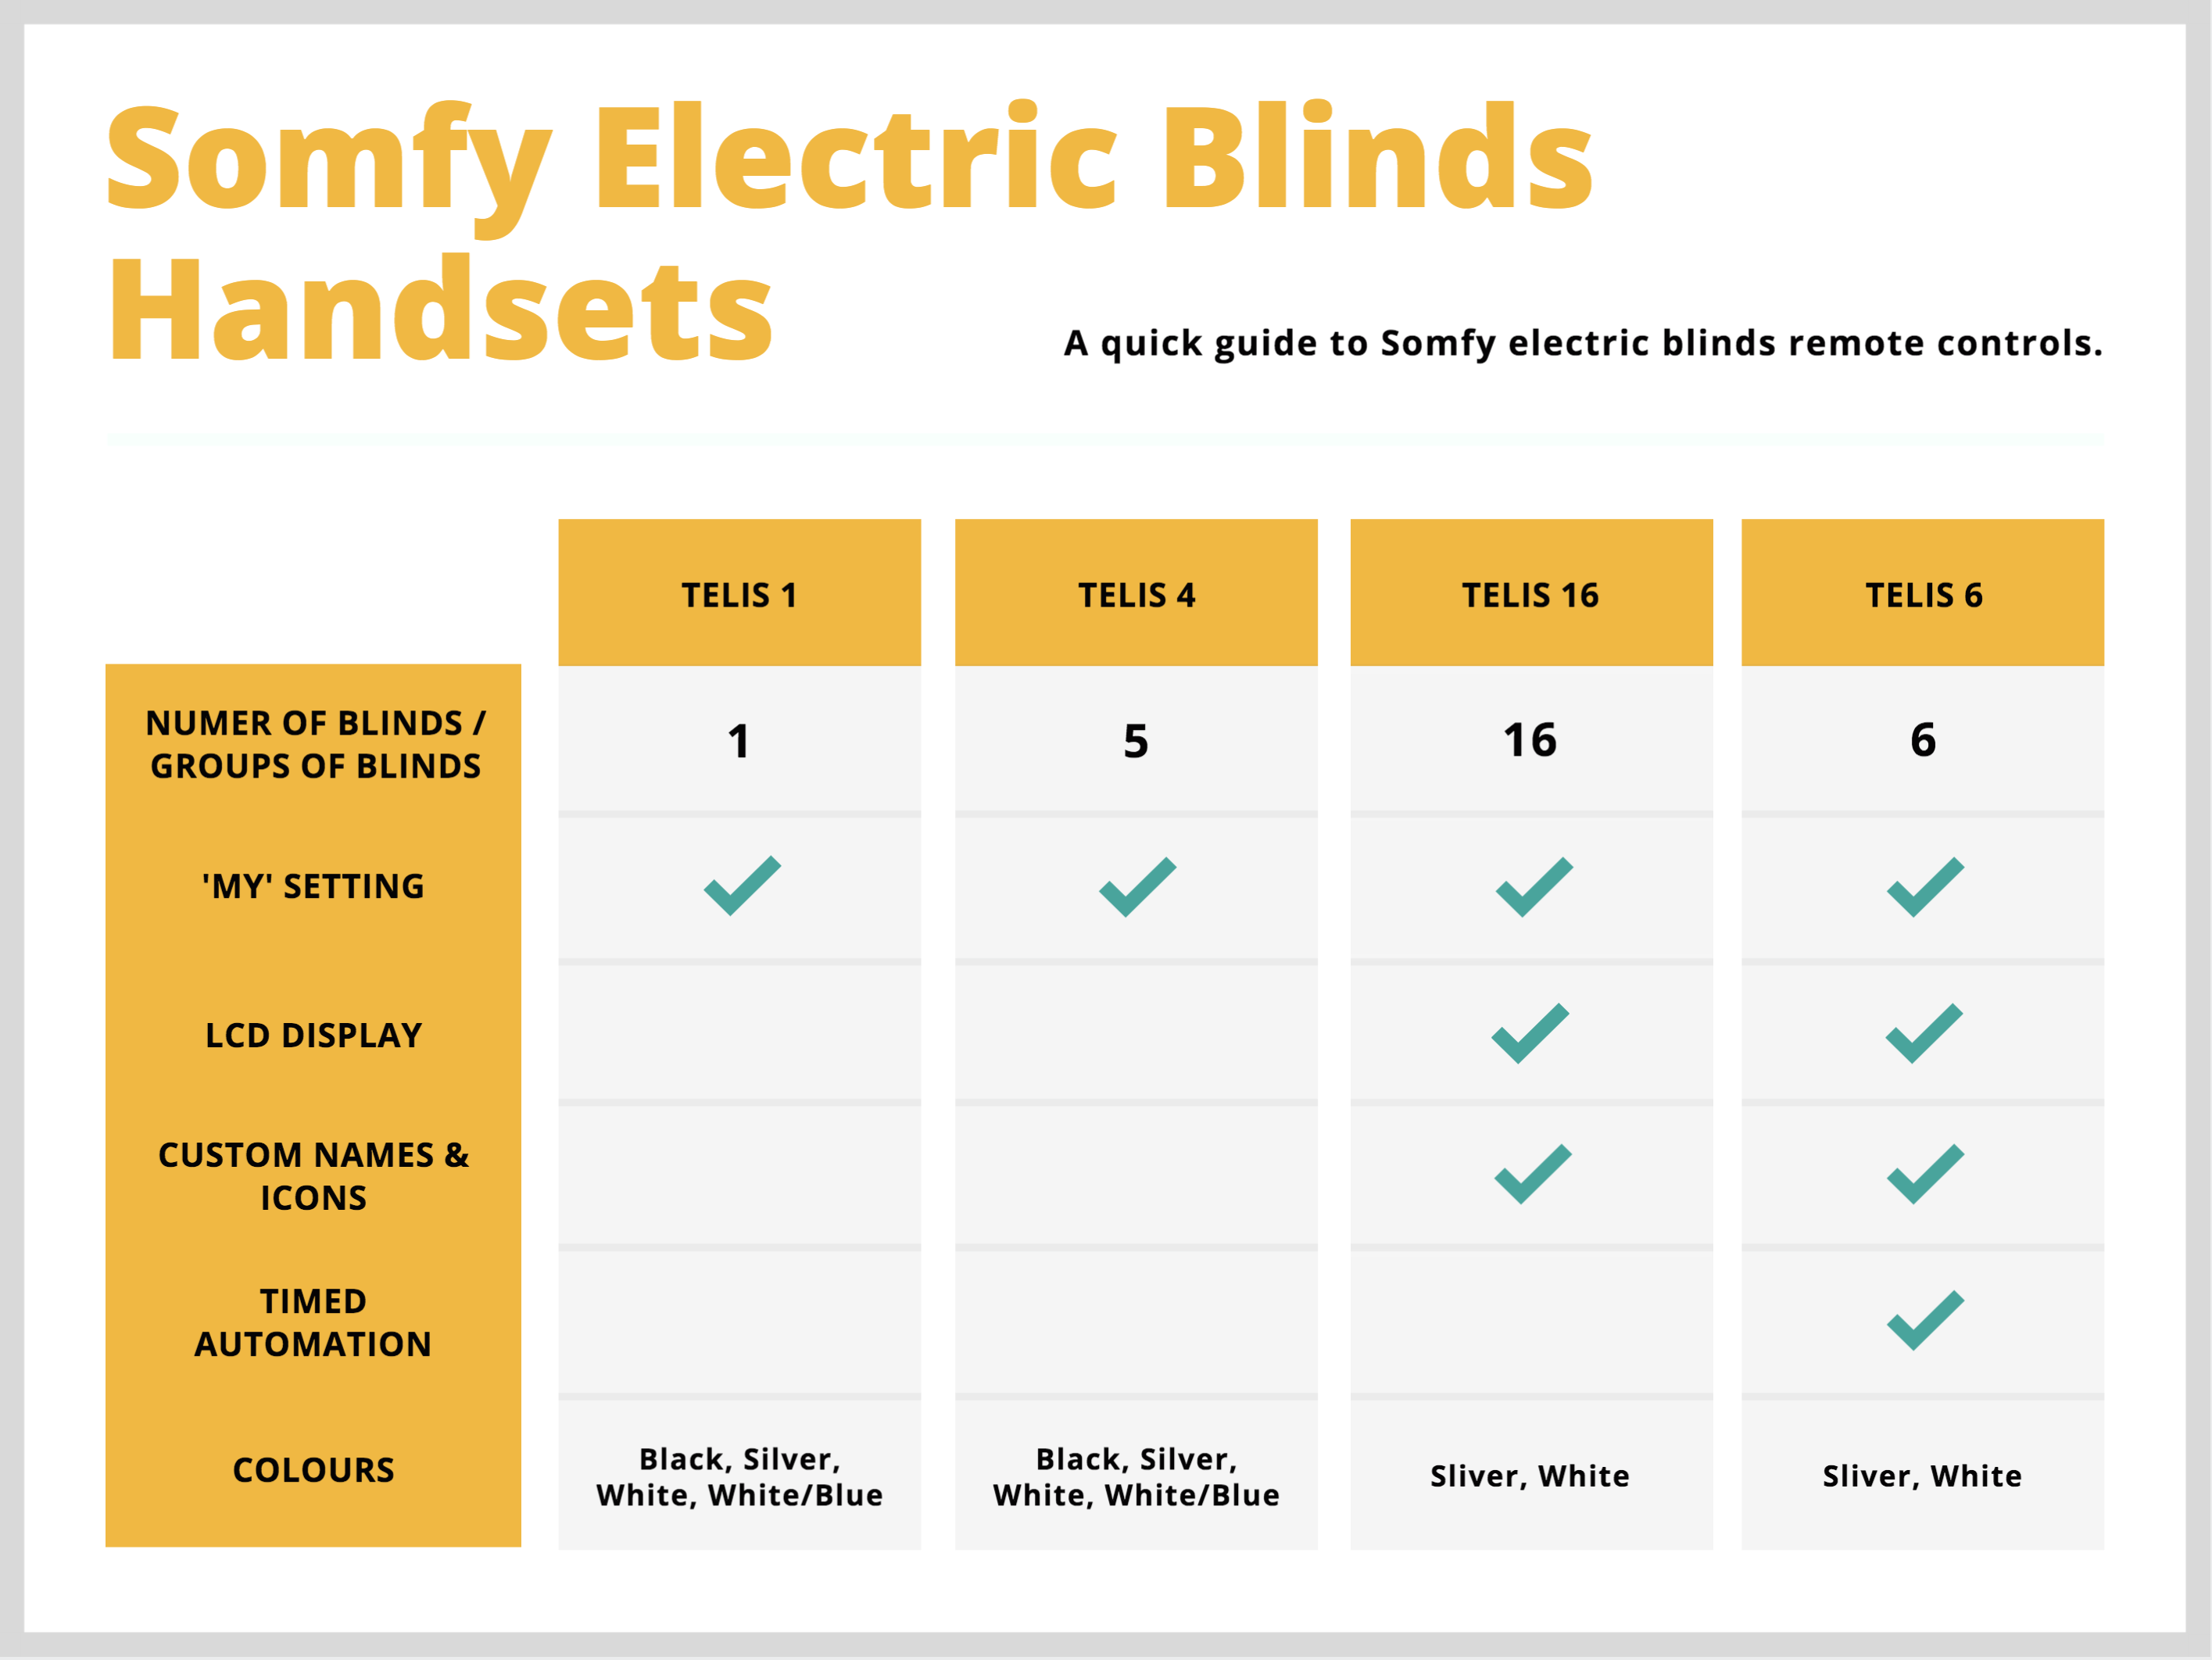 Somfy Electric Blinds Remote Controls - Comparison Chart - The Electric Blind Company